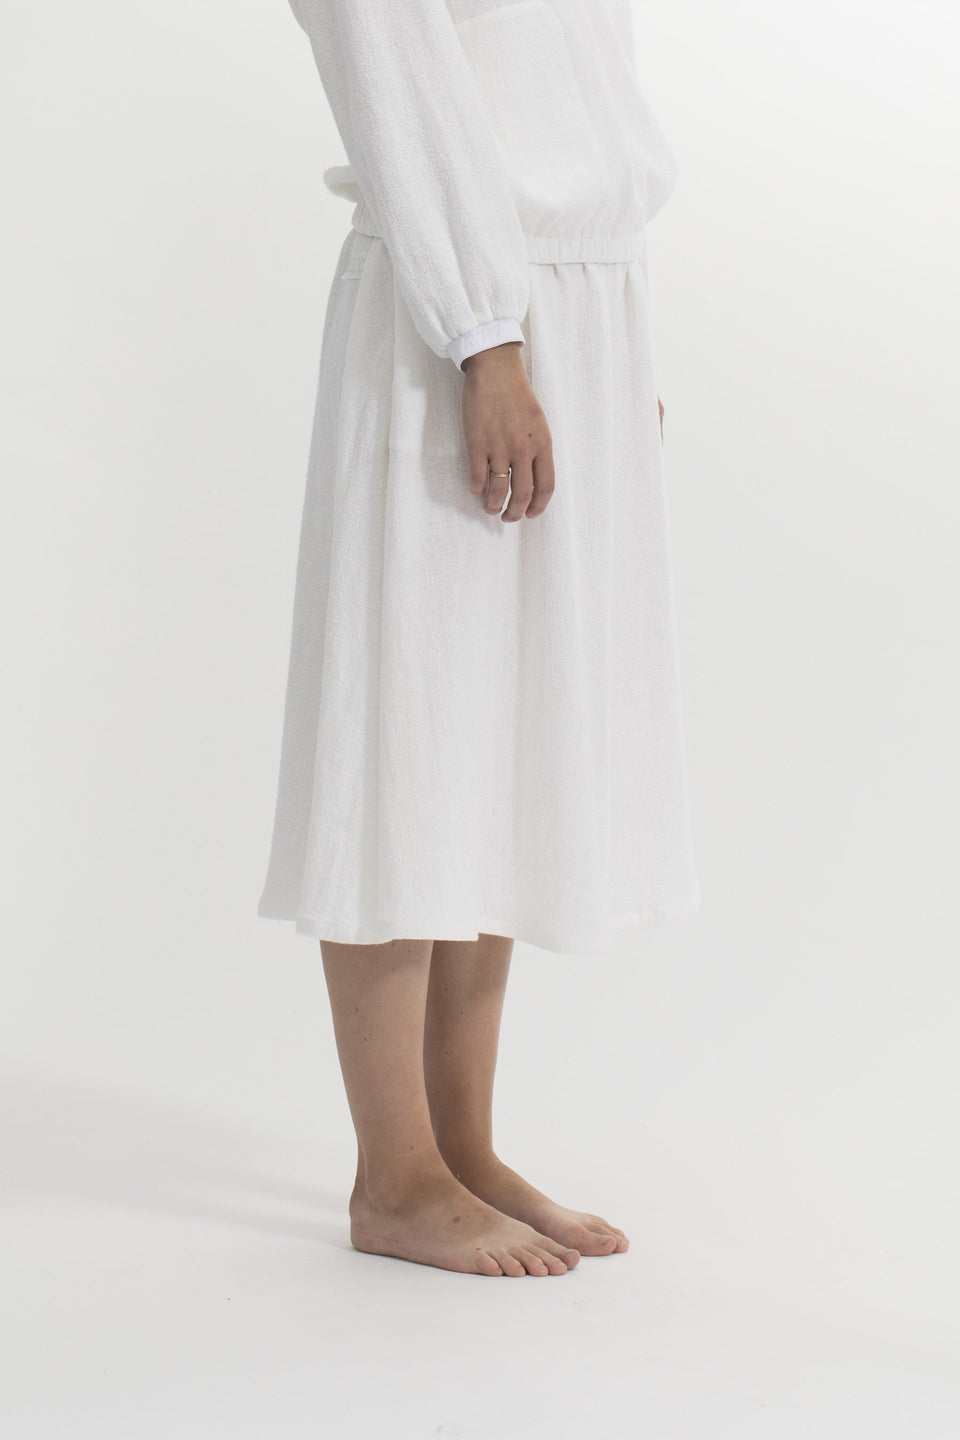 RAW Women Comfort Skirt White